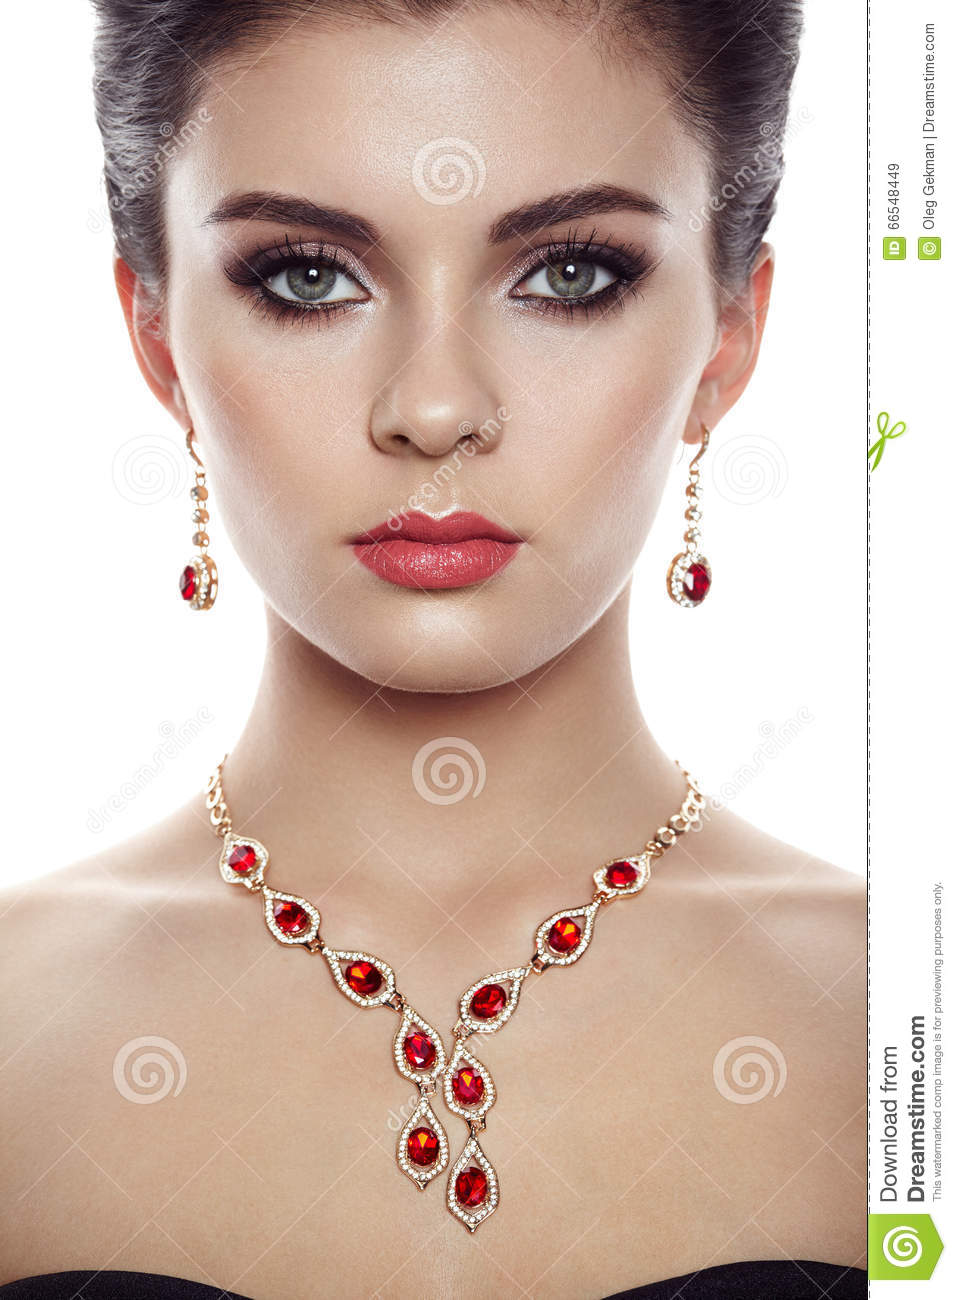 Fashion Portrait Of Young Beautiful Woman With Jewelry Stock Image 83194885